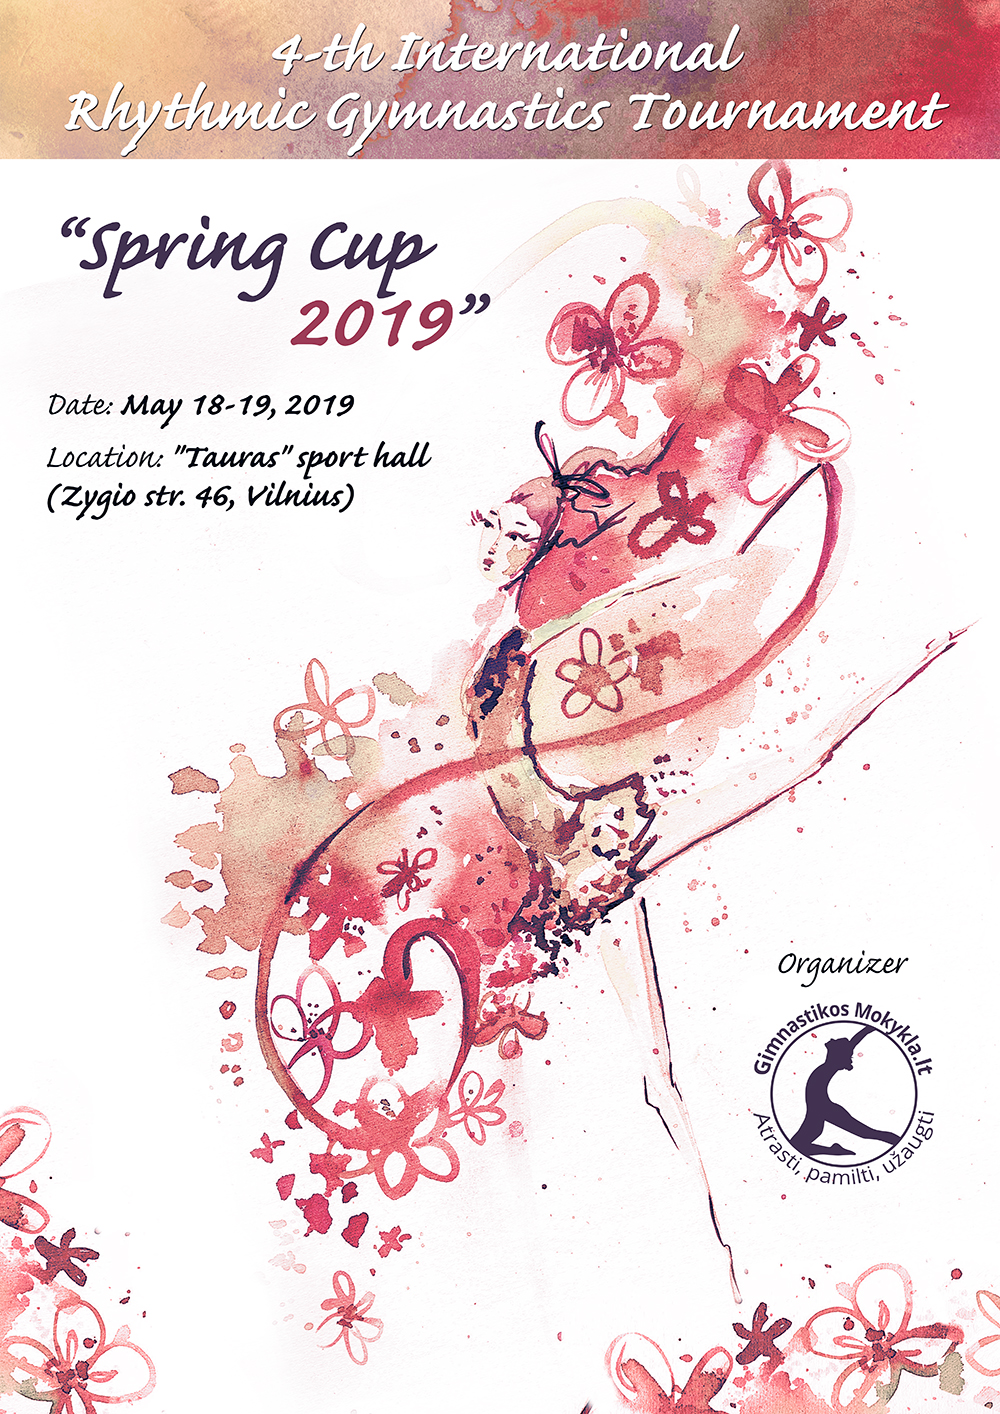 Spring Cup 2019